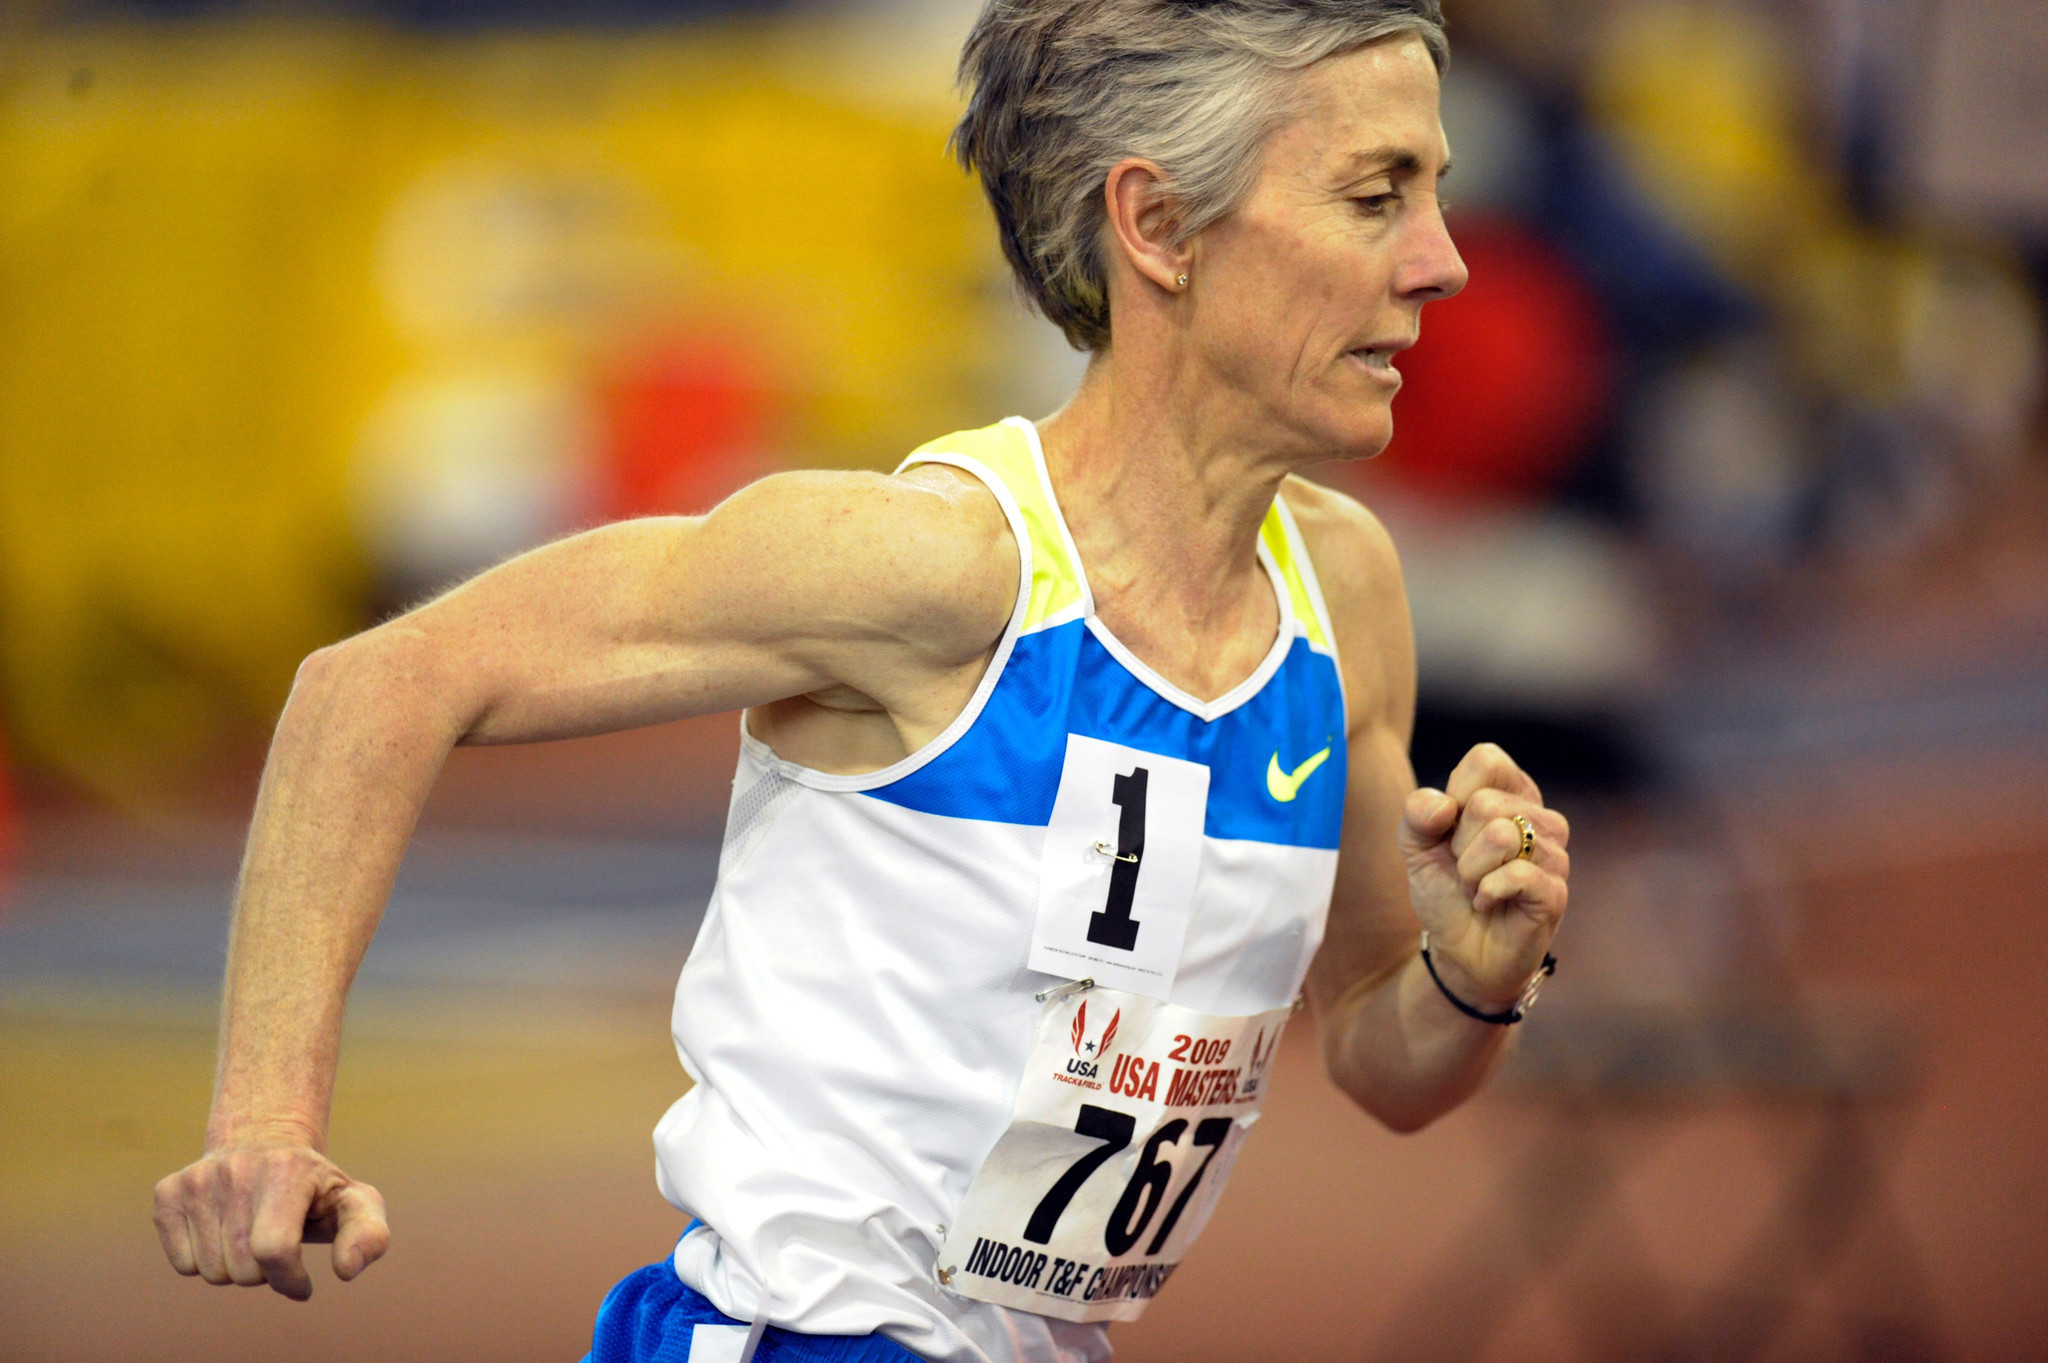 Olympic Champion Joan Benoit- Samuelson now 61 wants to break the world 60 plus record at Chicago  Marathon